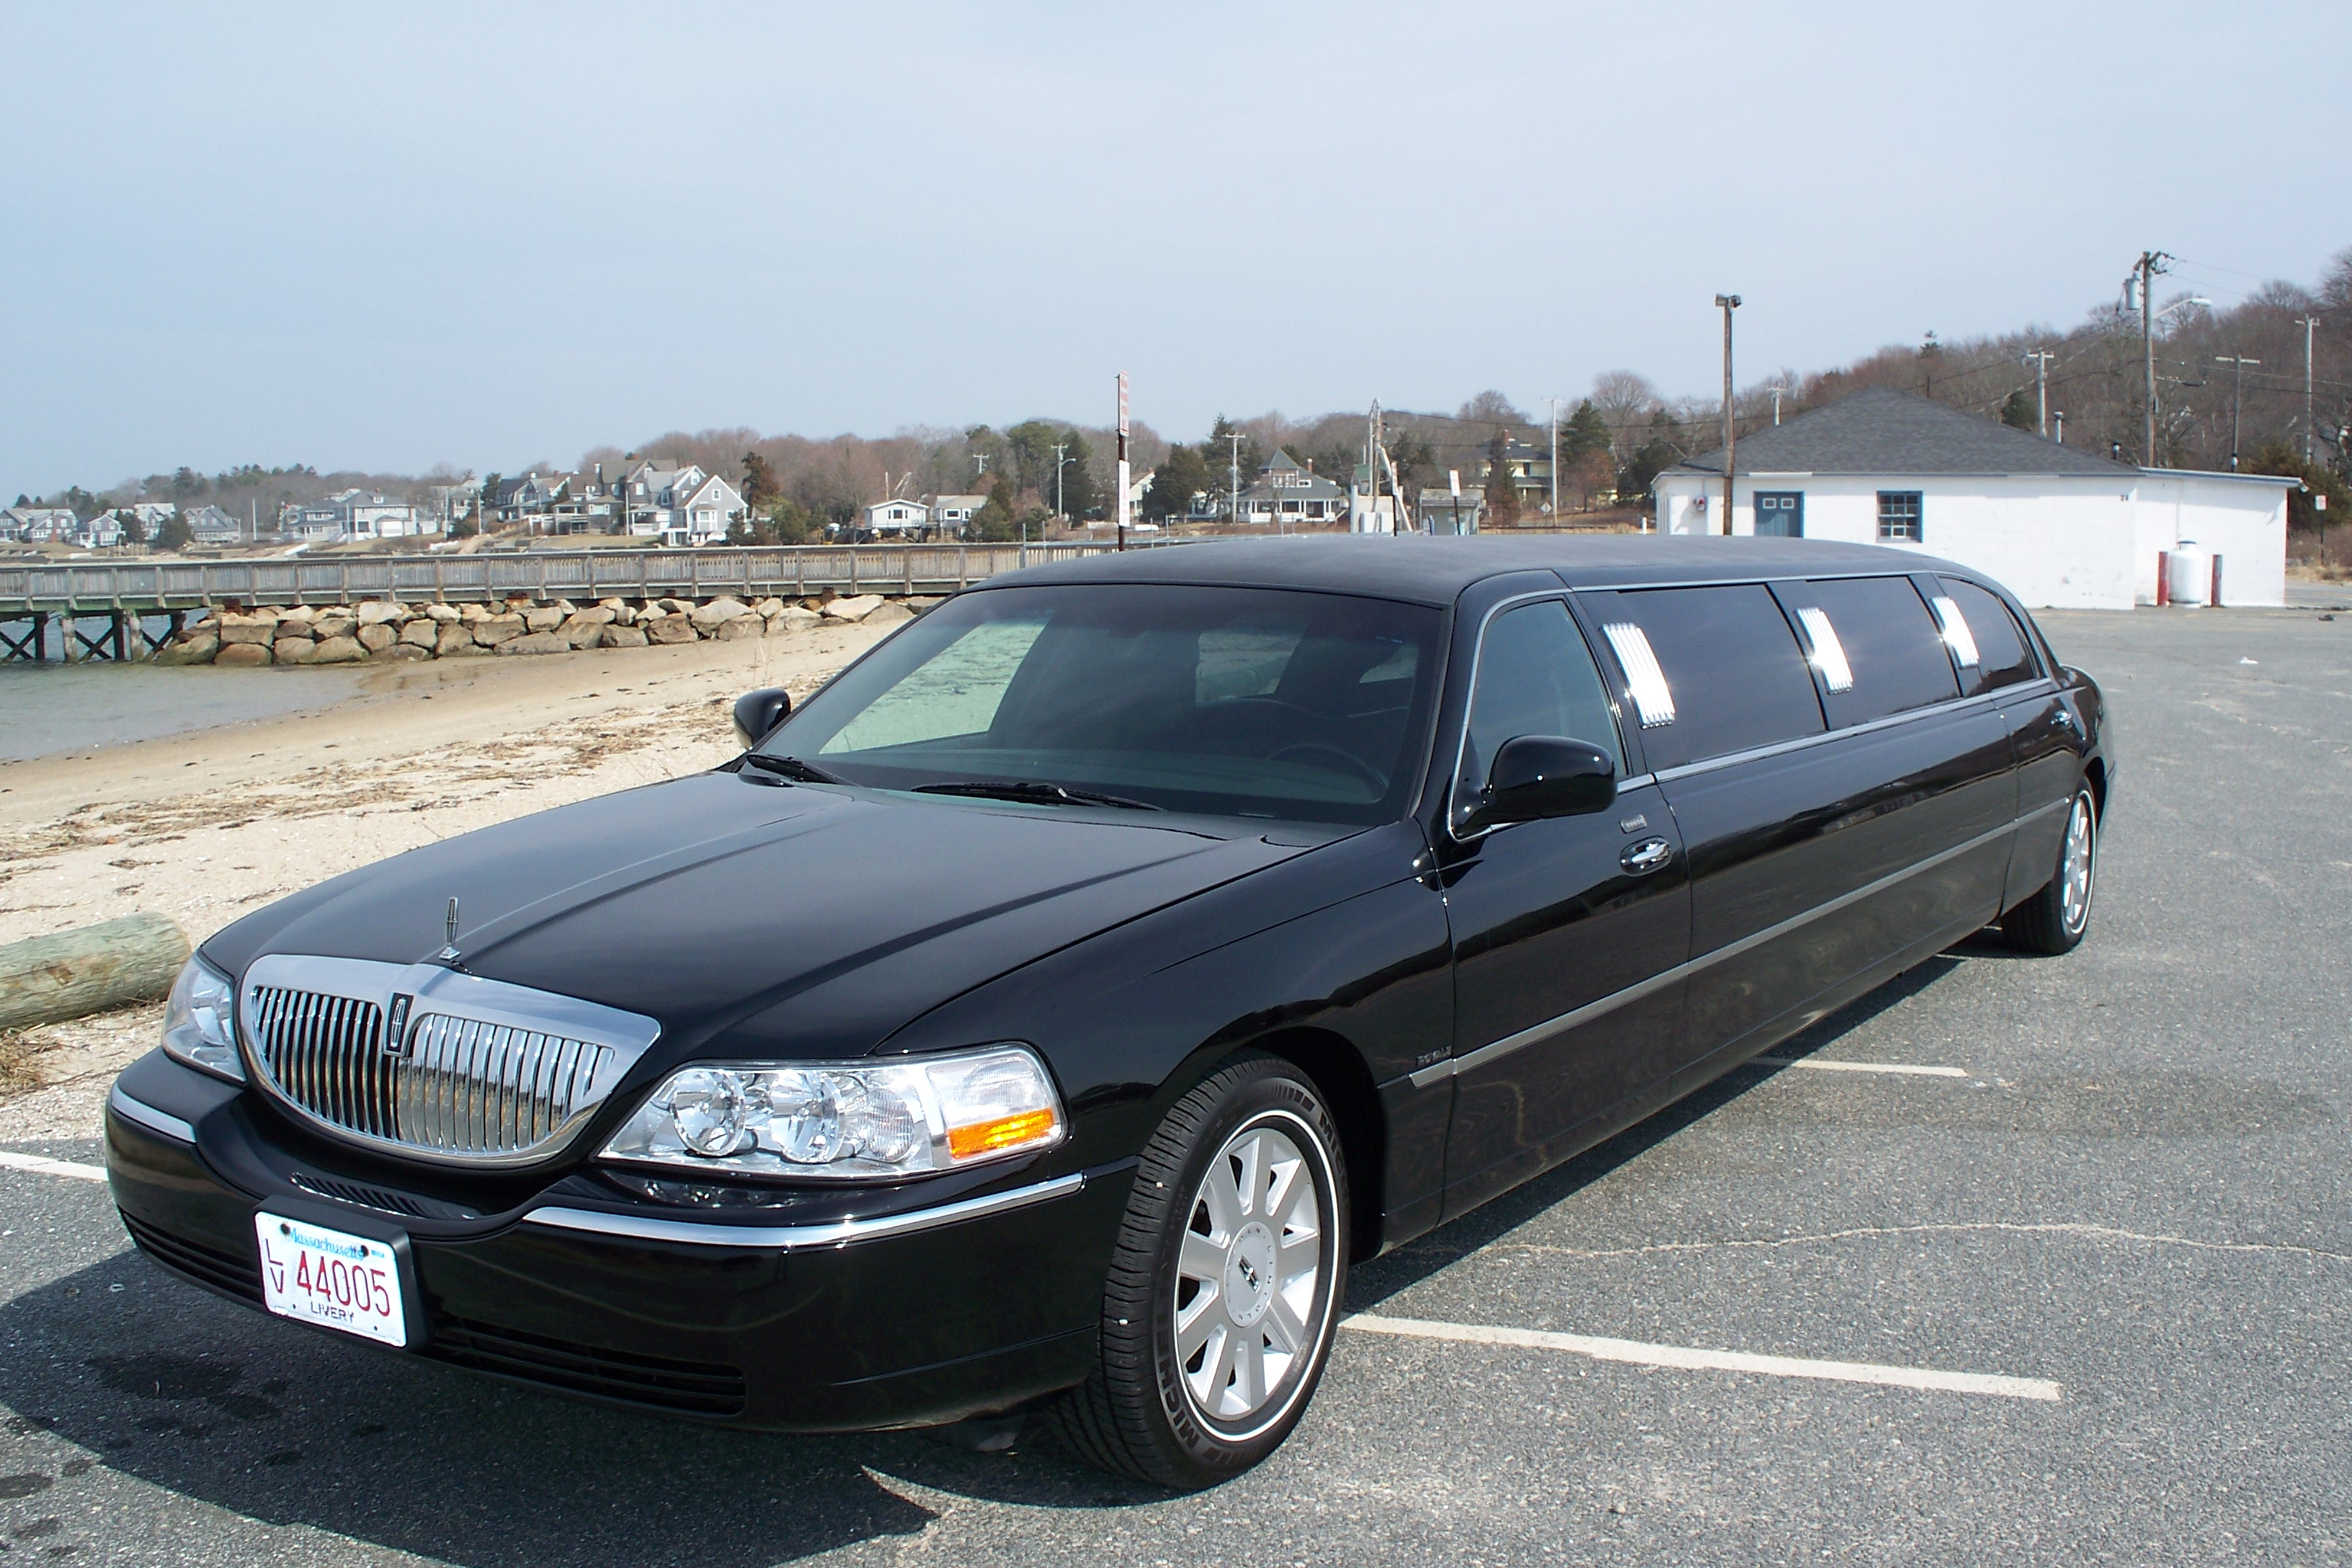 Car Rental Logan Airport To Hyannis Ma